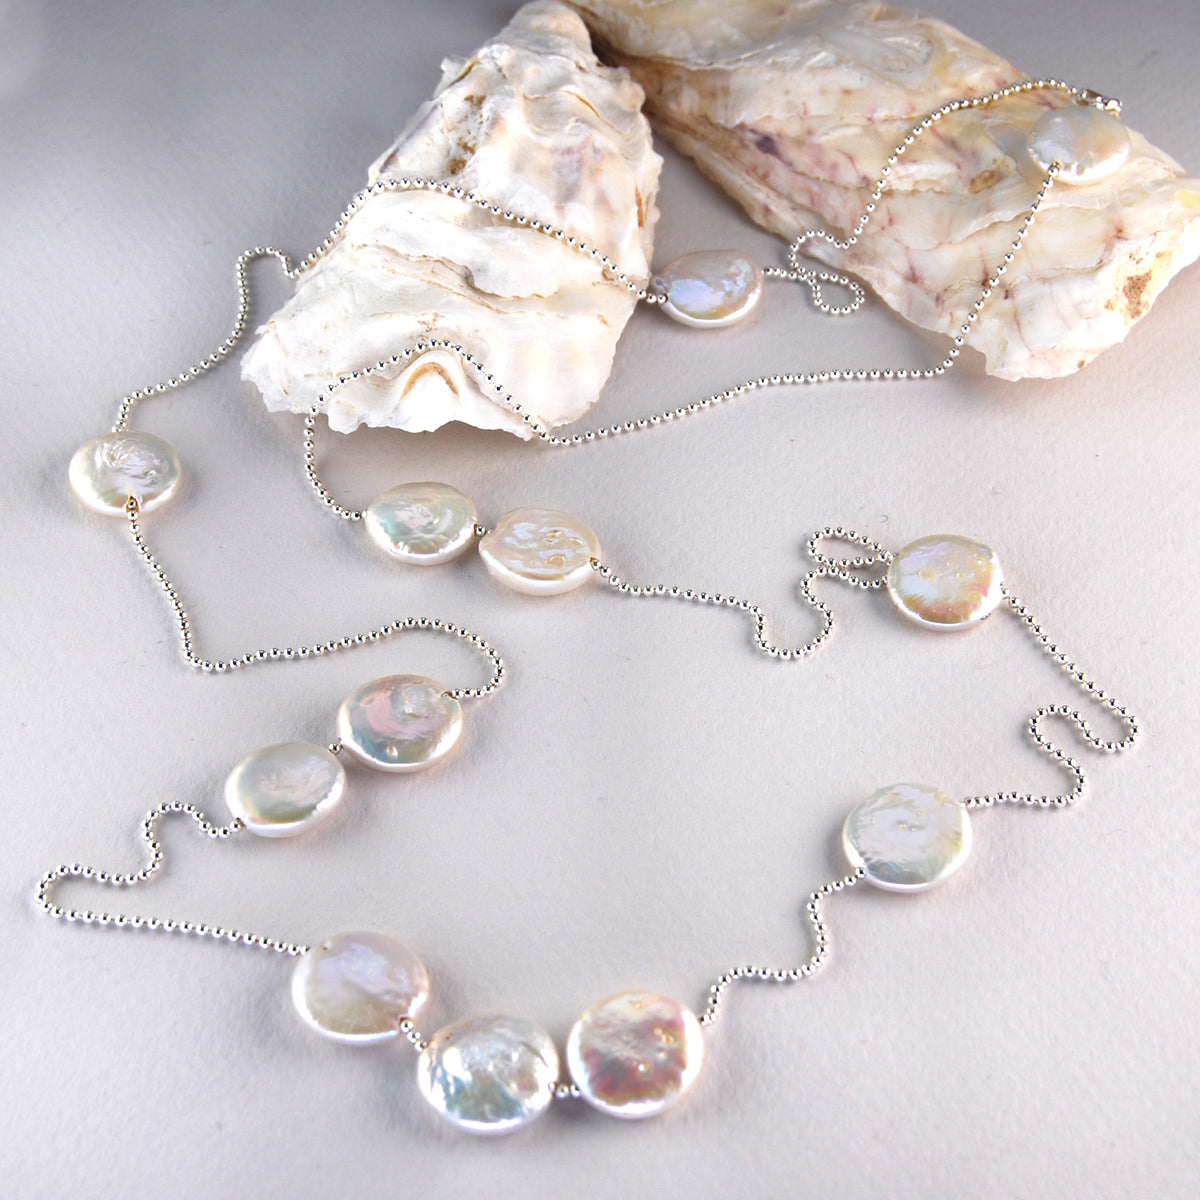 Large Flat M&M Freshwater Pearl Spacers on Silver Bead Chain